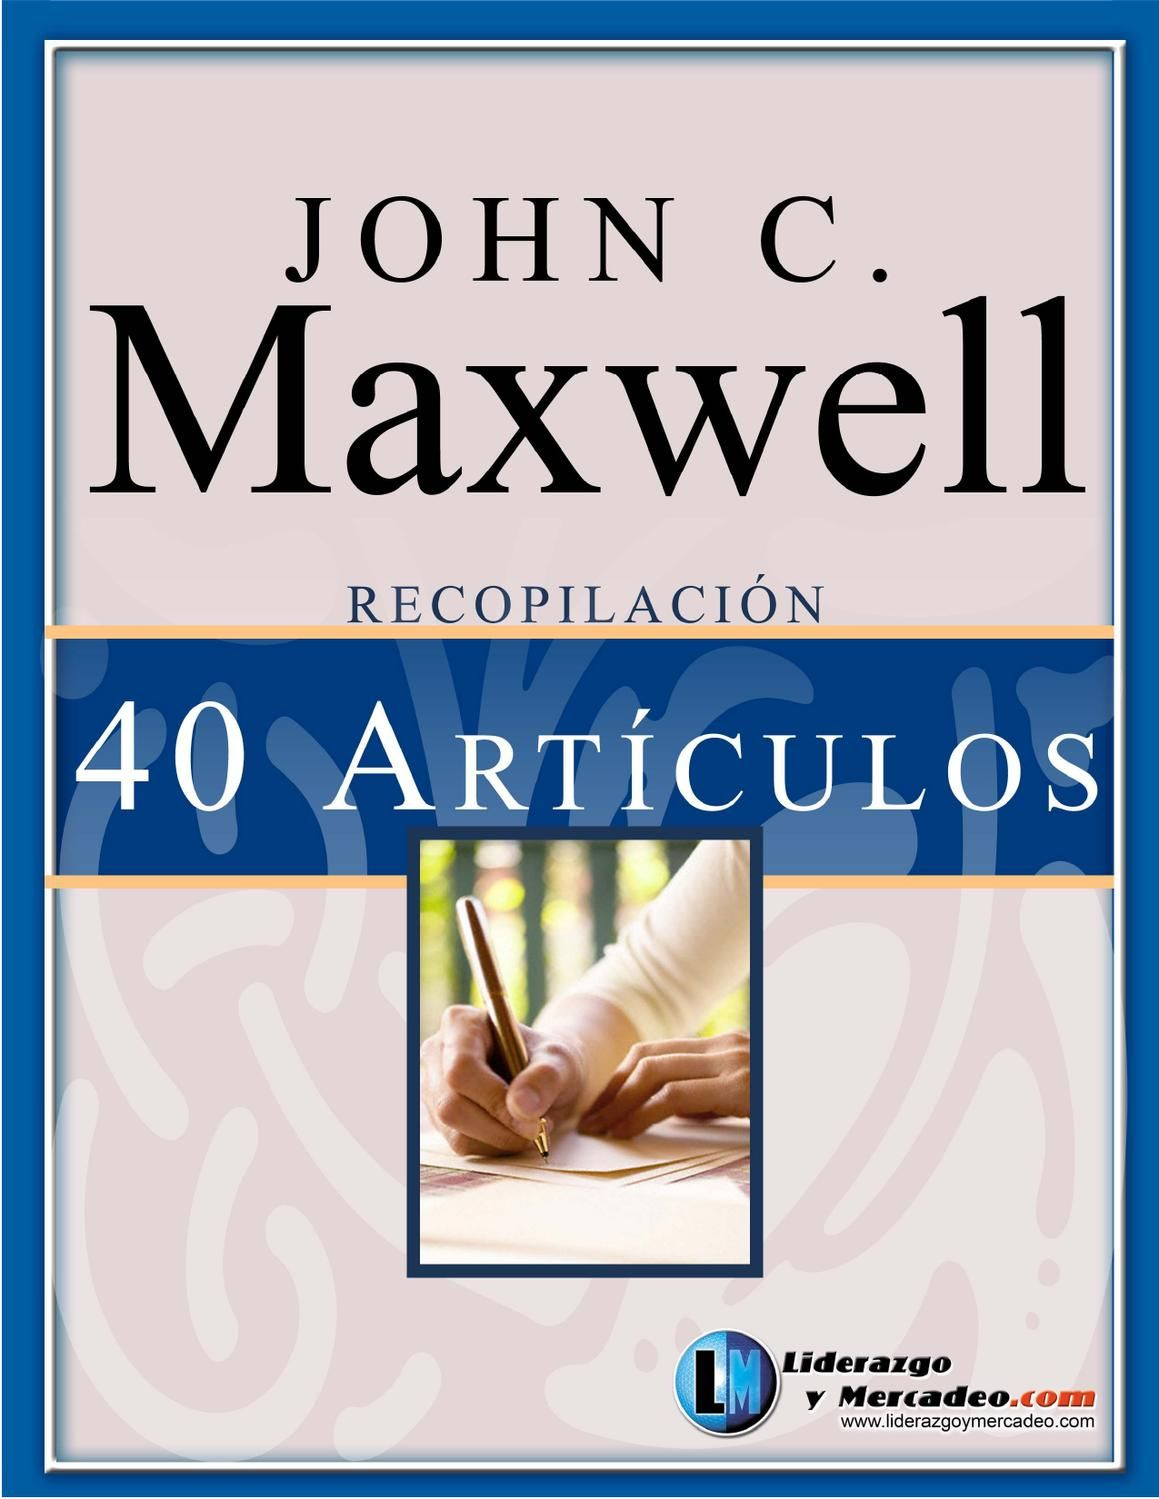 Jhon Maxwell 40 Articulos Exitosos Education Books Maxwell